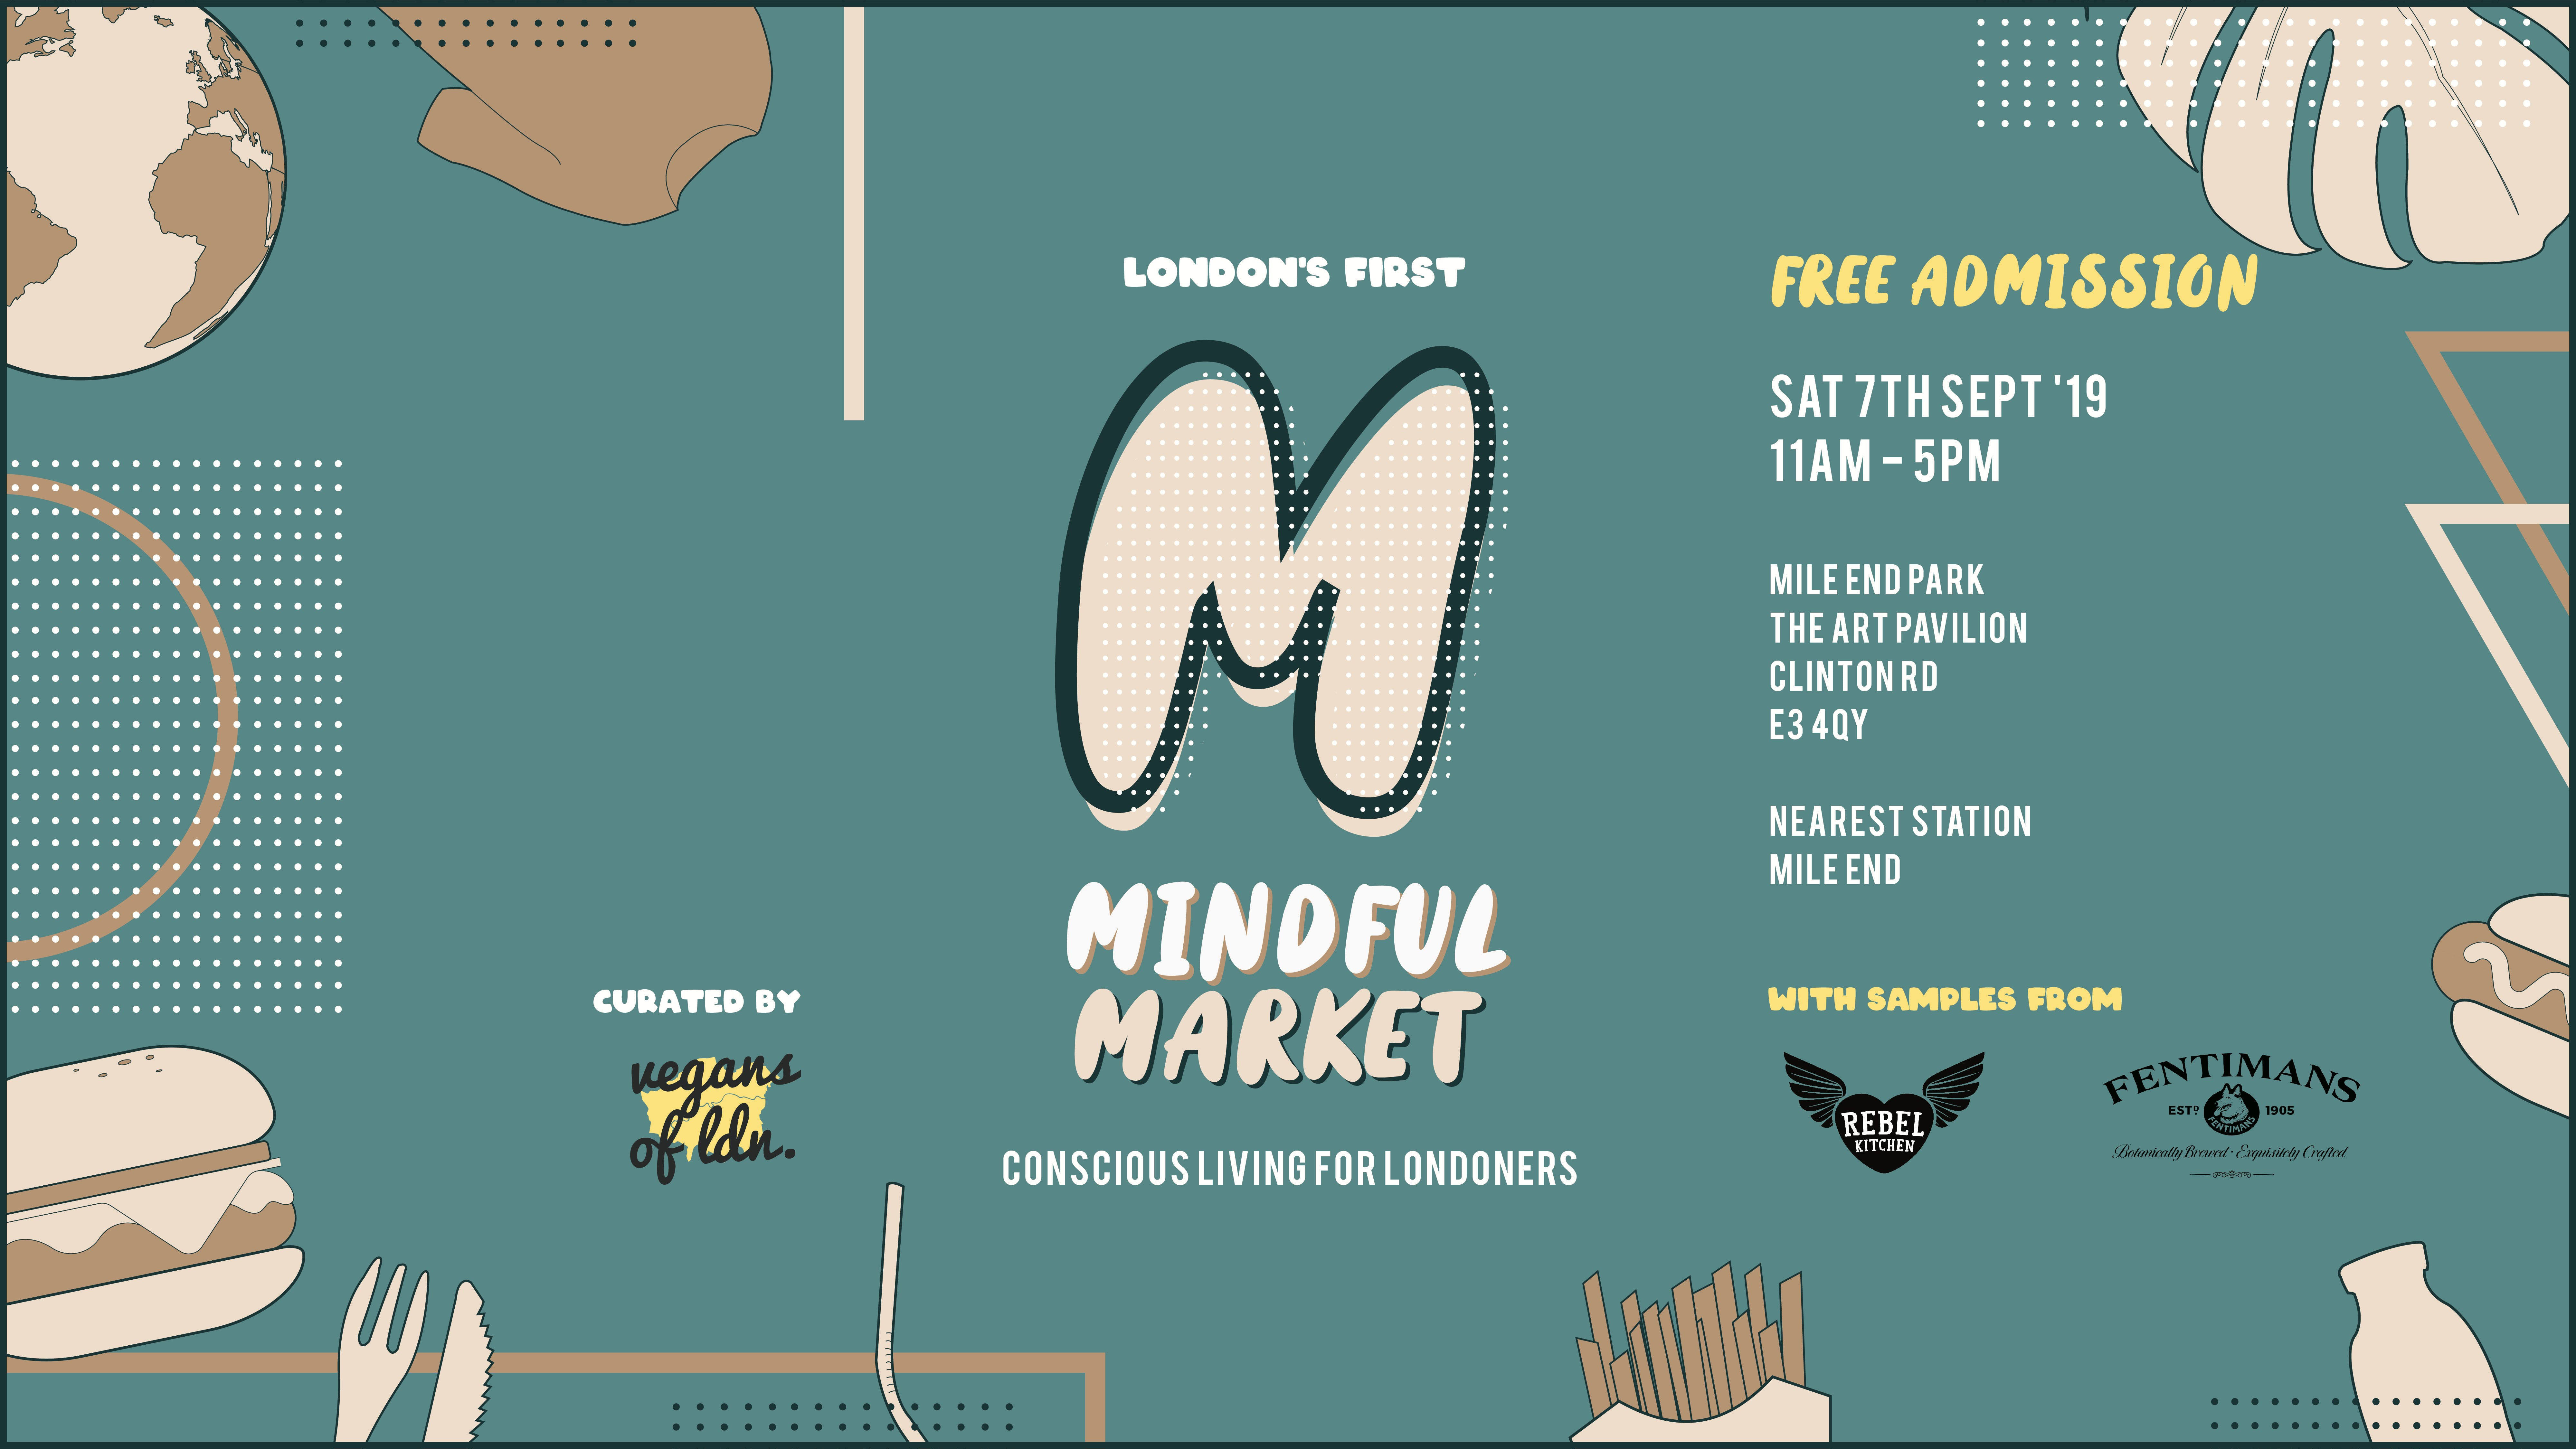 The Mindful Market - London's First!